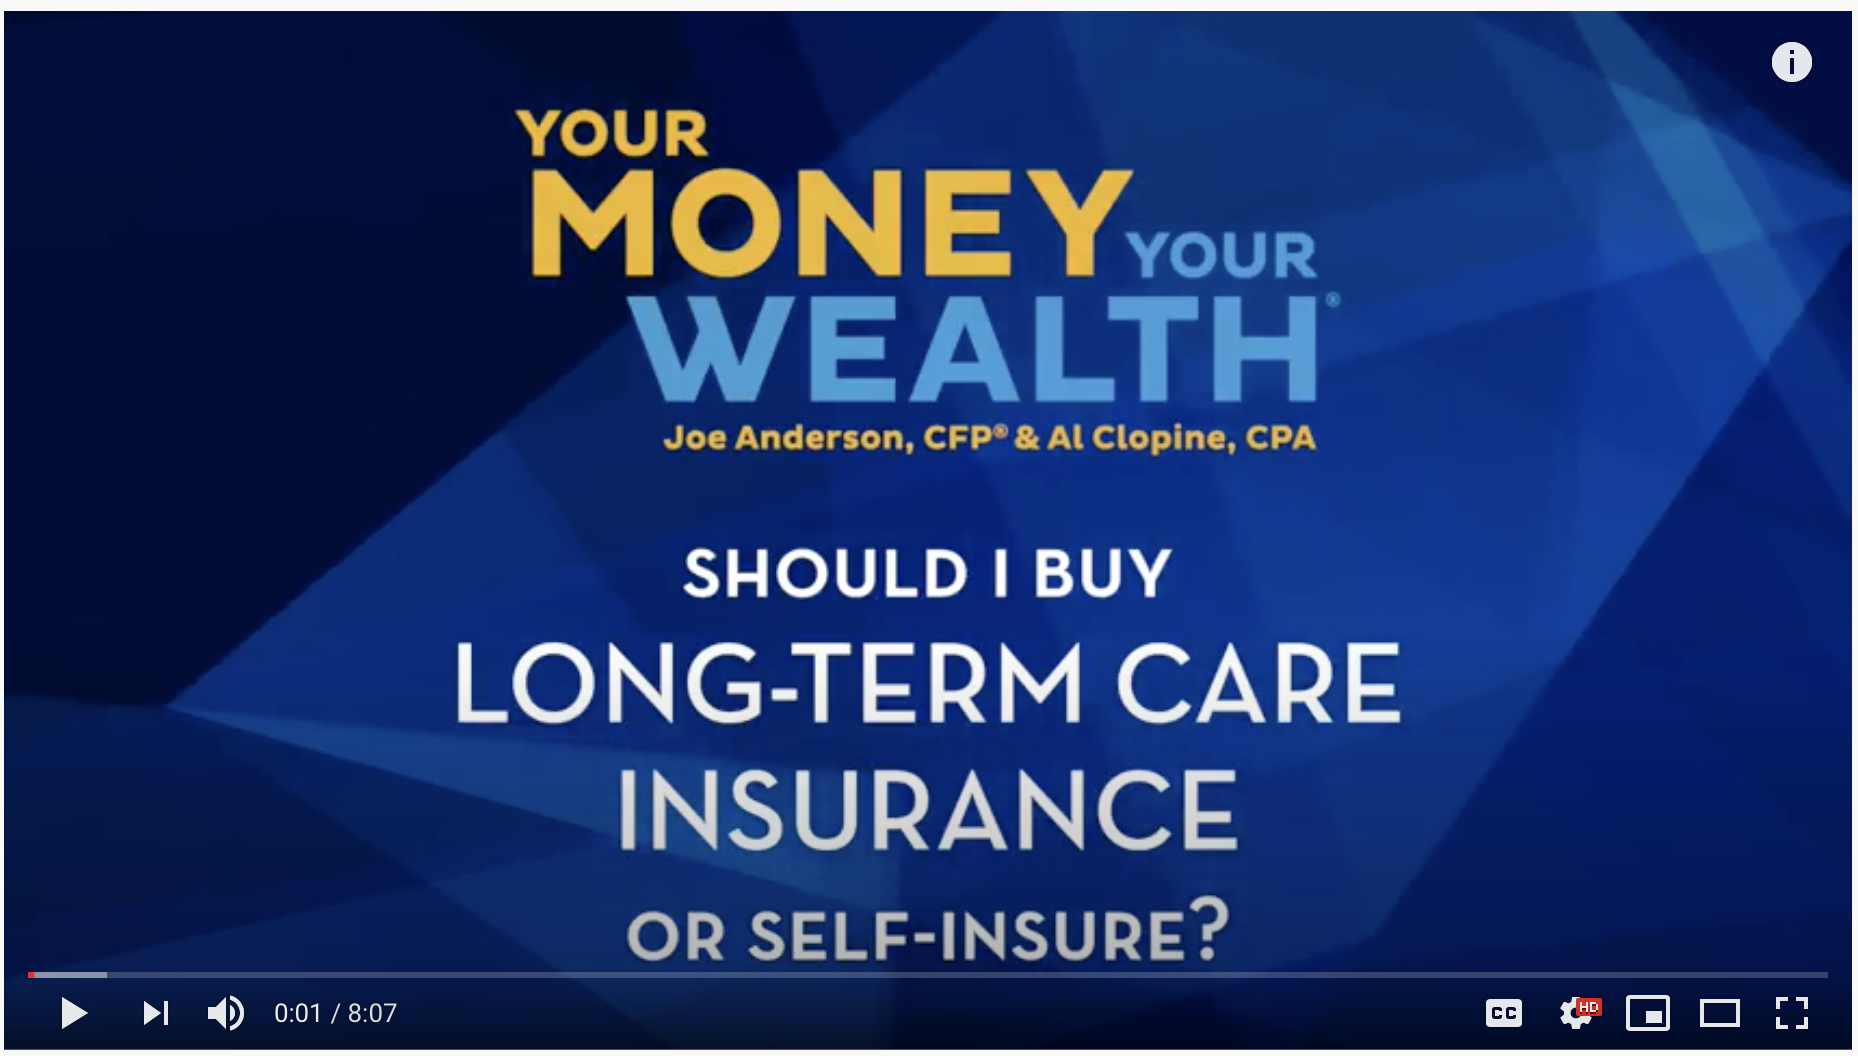 Buy Long-Term Care Insurance or Self-Insure?